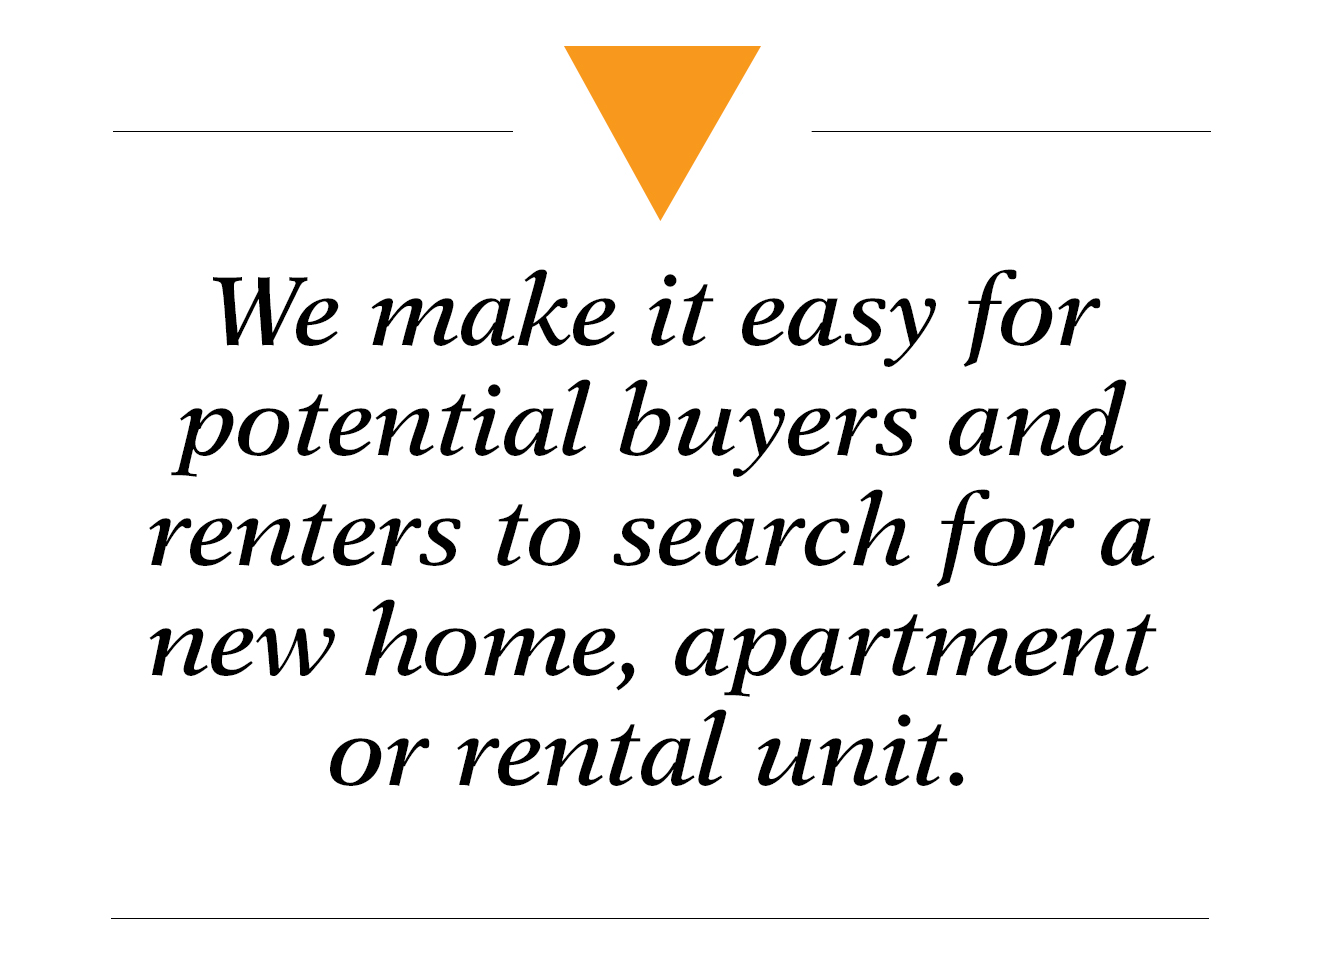 We make it easy for potential buyers and renters to search for a new home, apartment or rental unit - real estate solutions